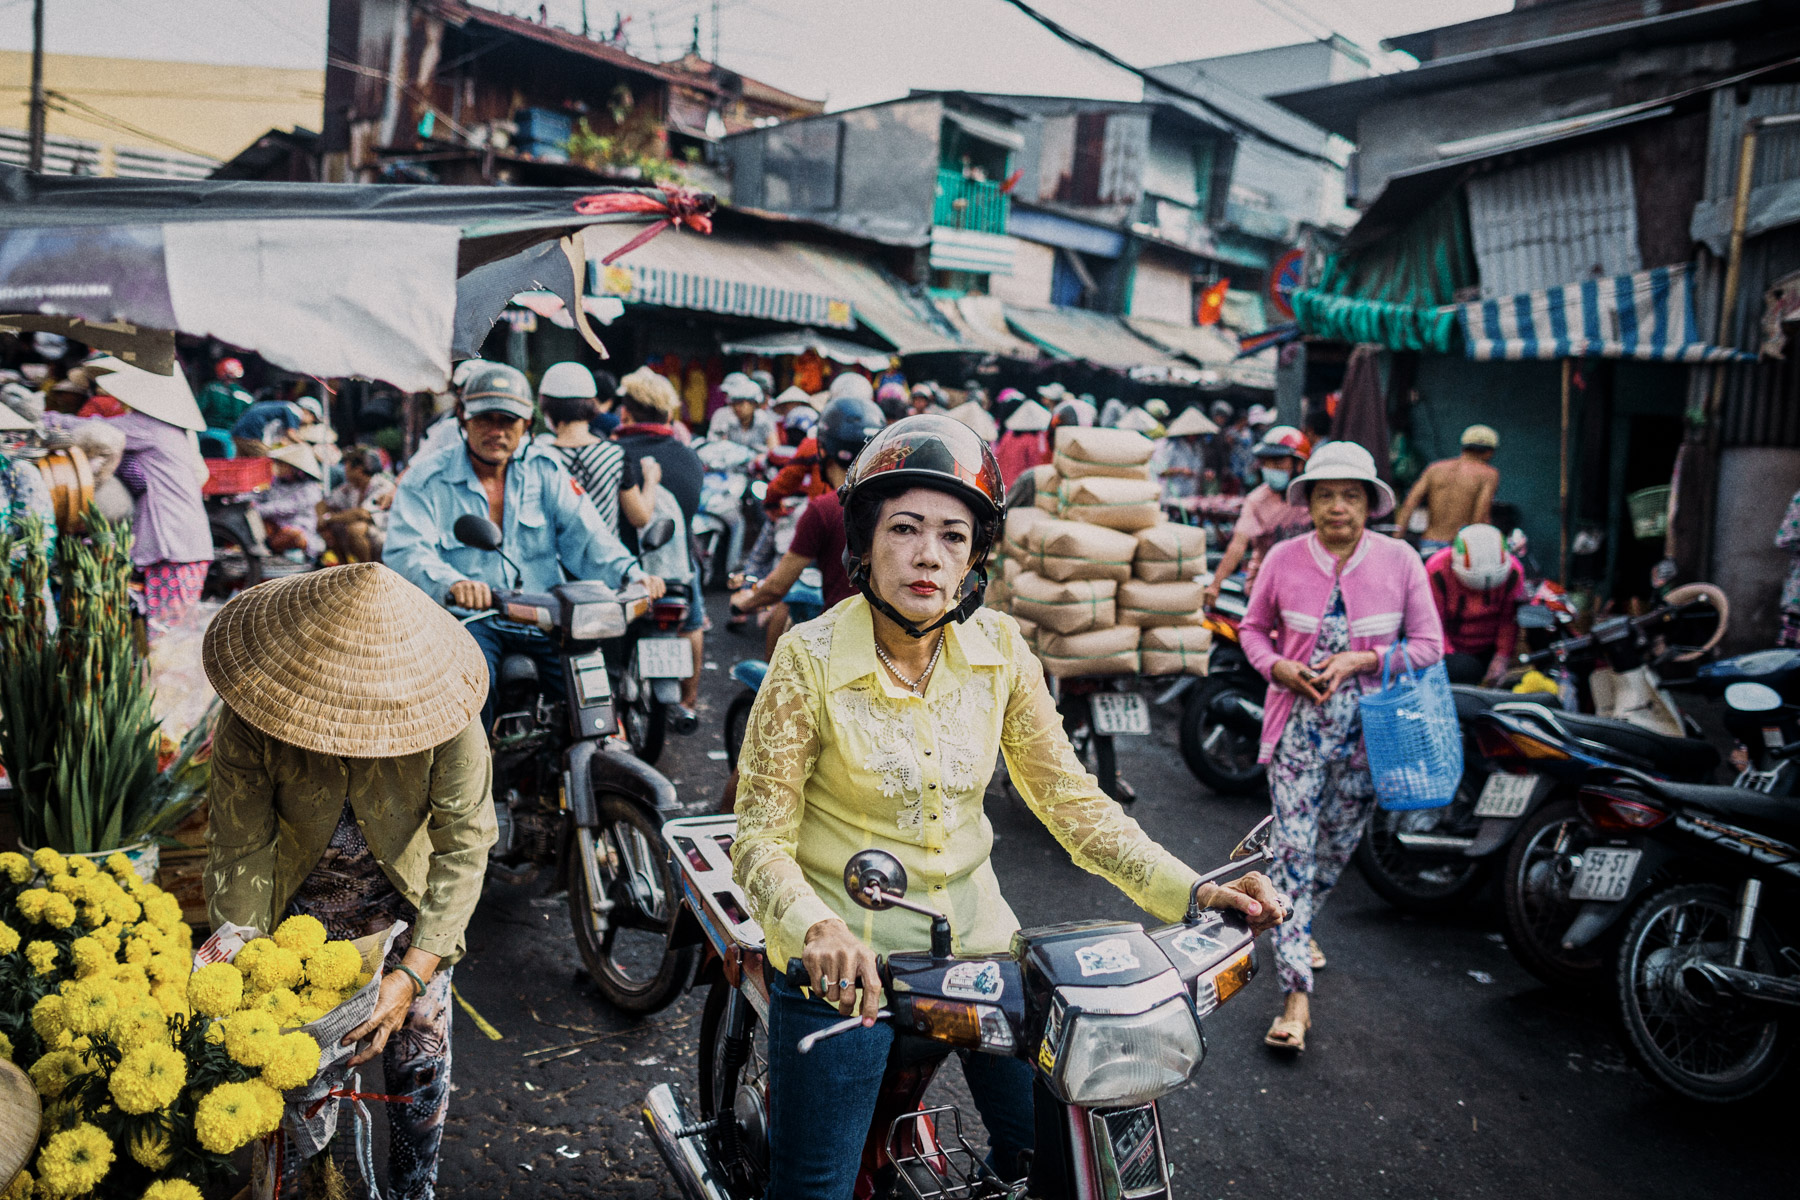 A typical market scene in District 5. Motorbikes, makeup, mayhem.